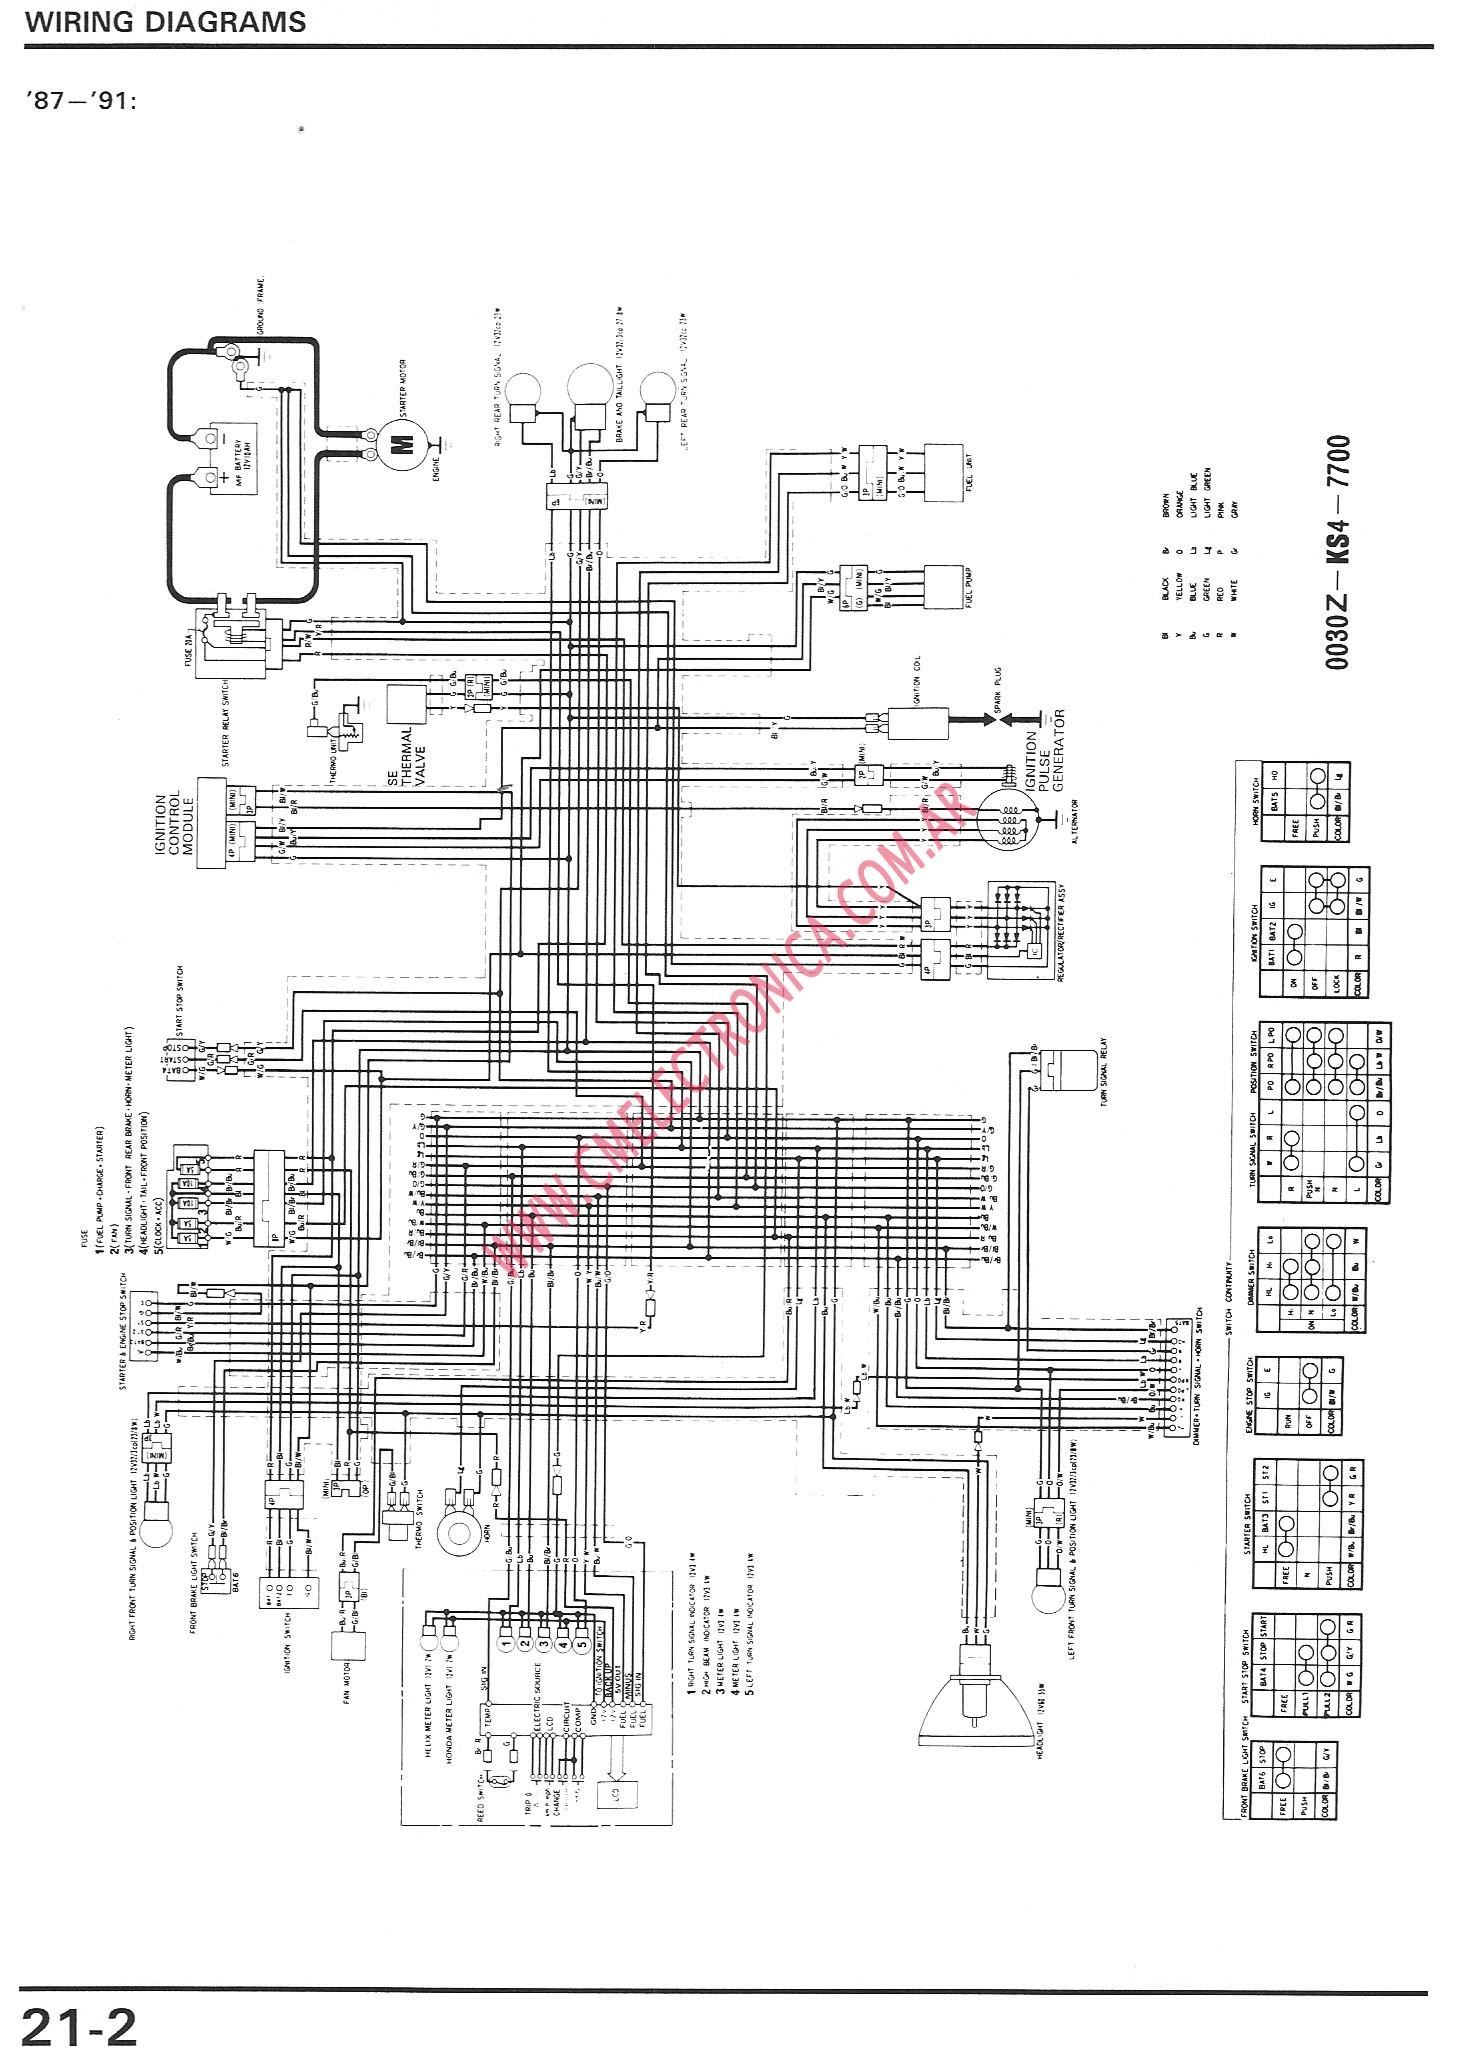 Daihatsu Mira Engine Wiring Diagram Another Blog About Schematics Hijet Rh Detoxicrecenze Com